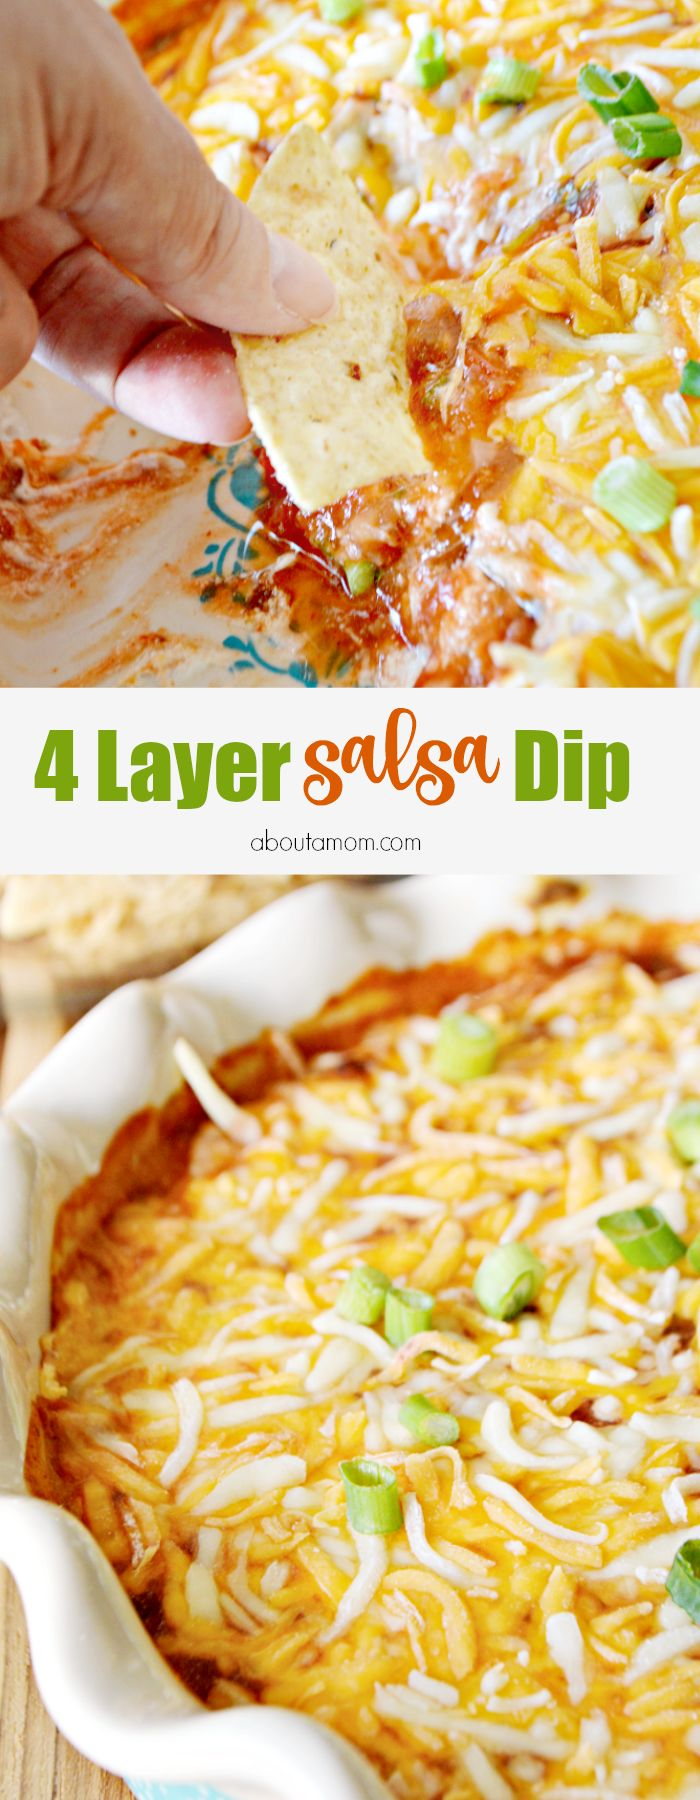 Easy 4 layer dip recipe. Layers of cream cheese, chili beans, Fresh Cravings Restaurant Style salsa, and a mixture of colby and jack cheeses come together to make a delicious dip that will have your friends and family begging for more.